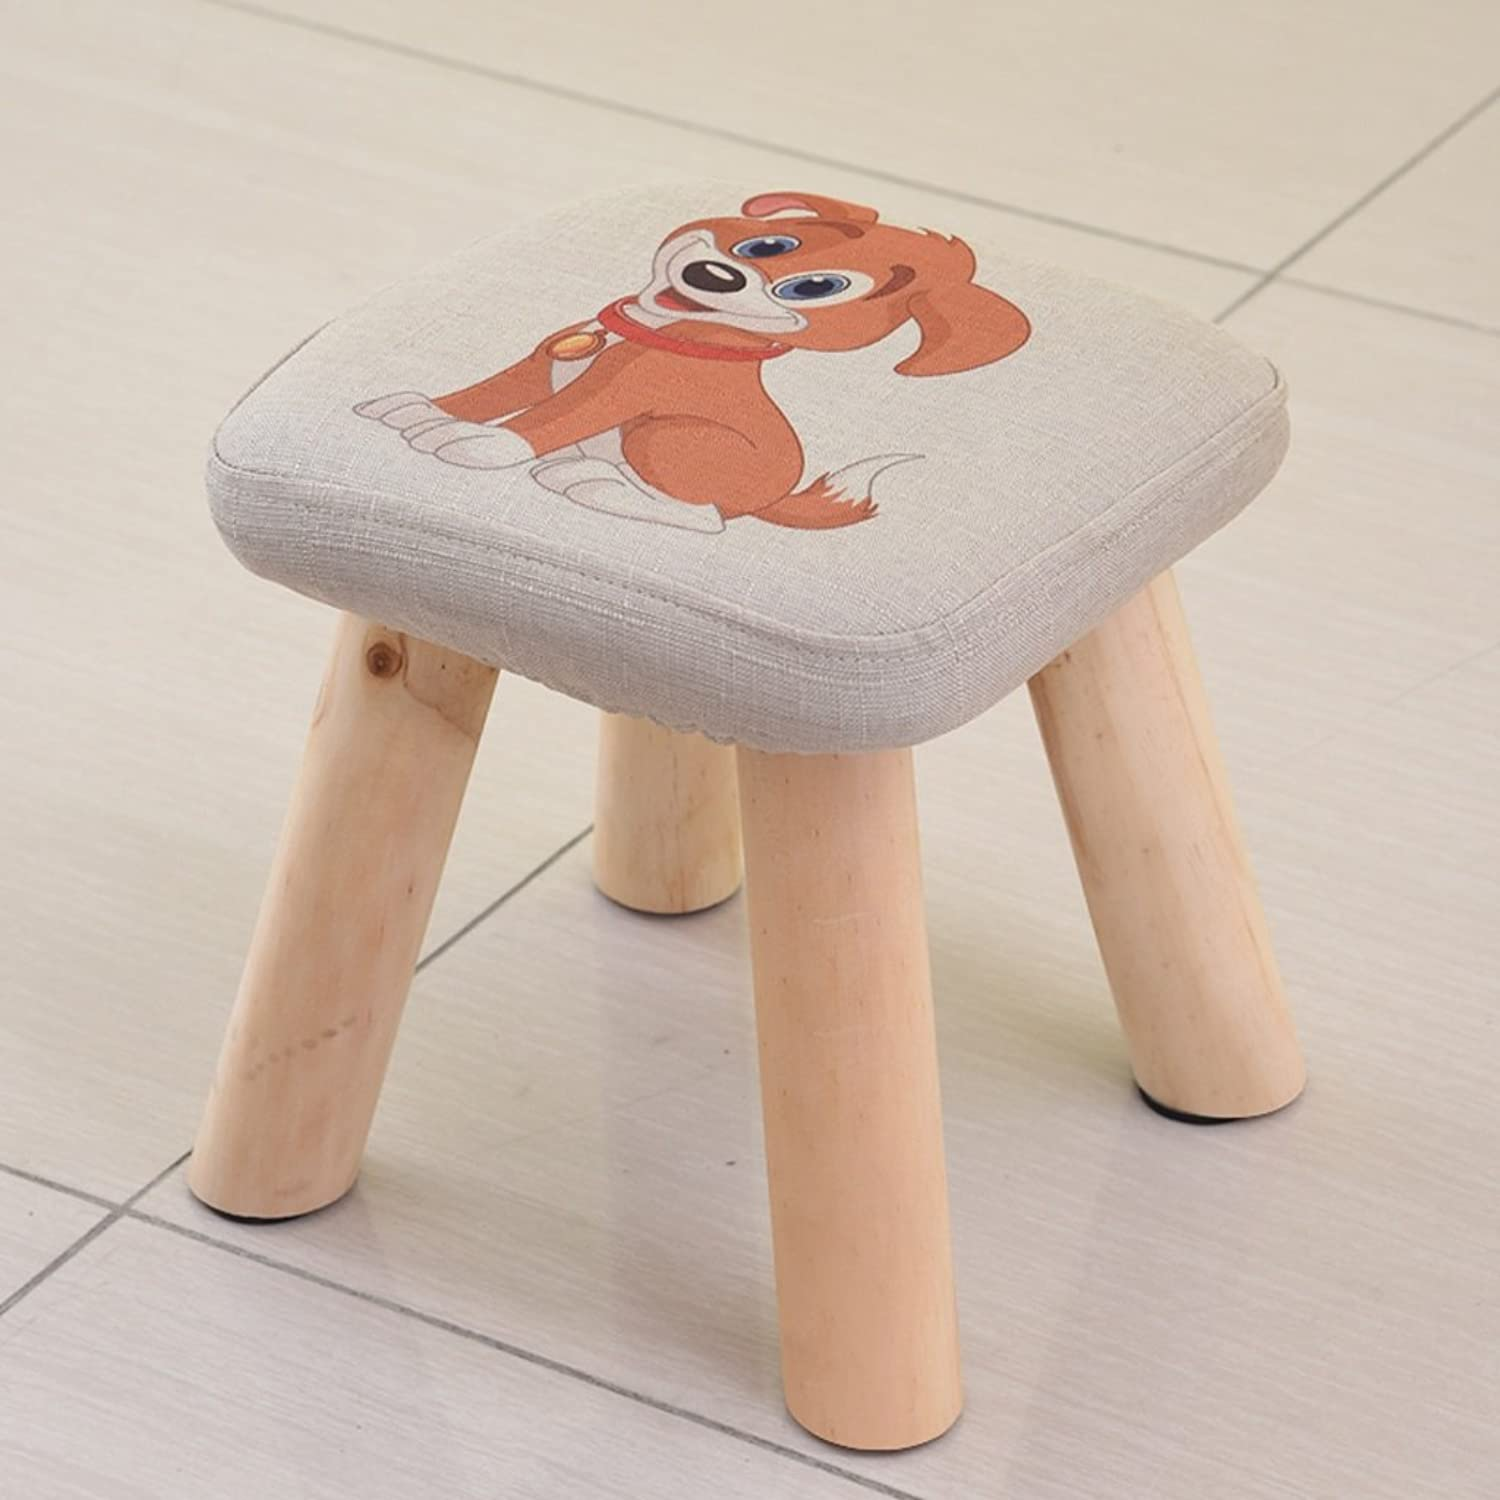 Wooden Square Stool Linen Cartoon Animal Tea Table Chair Household shoes Changing Stool (color   Dog)